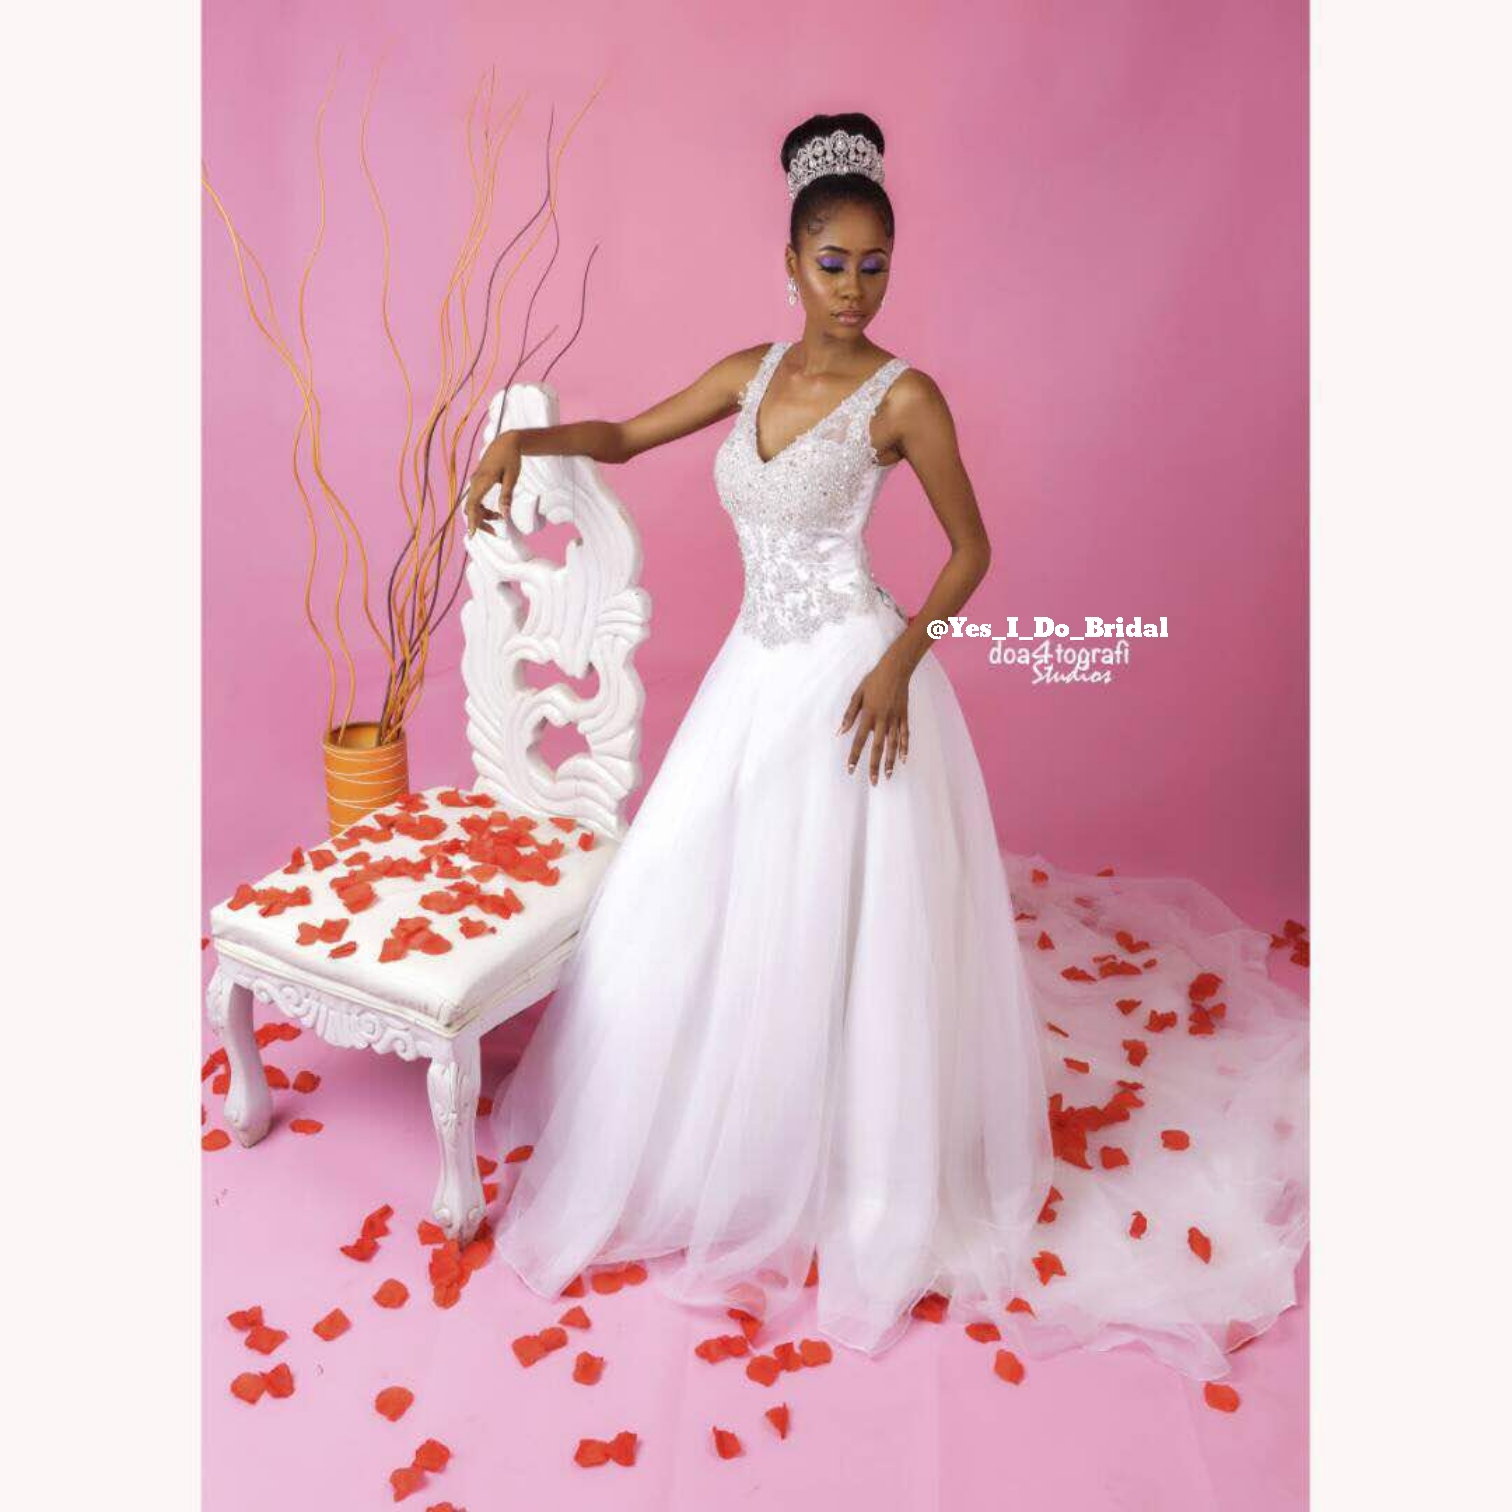 YES I DO BRIDAL'S PINK AND PEARL LOOK BOOK